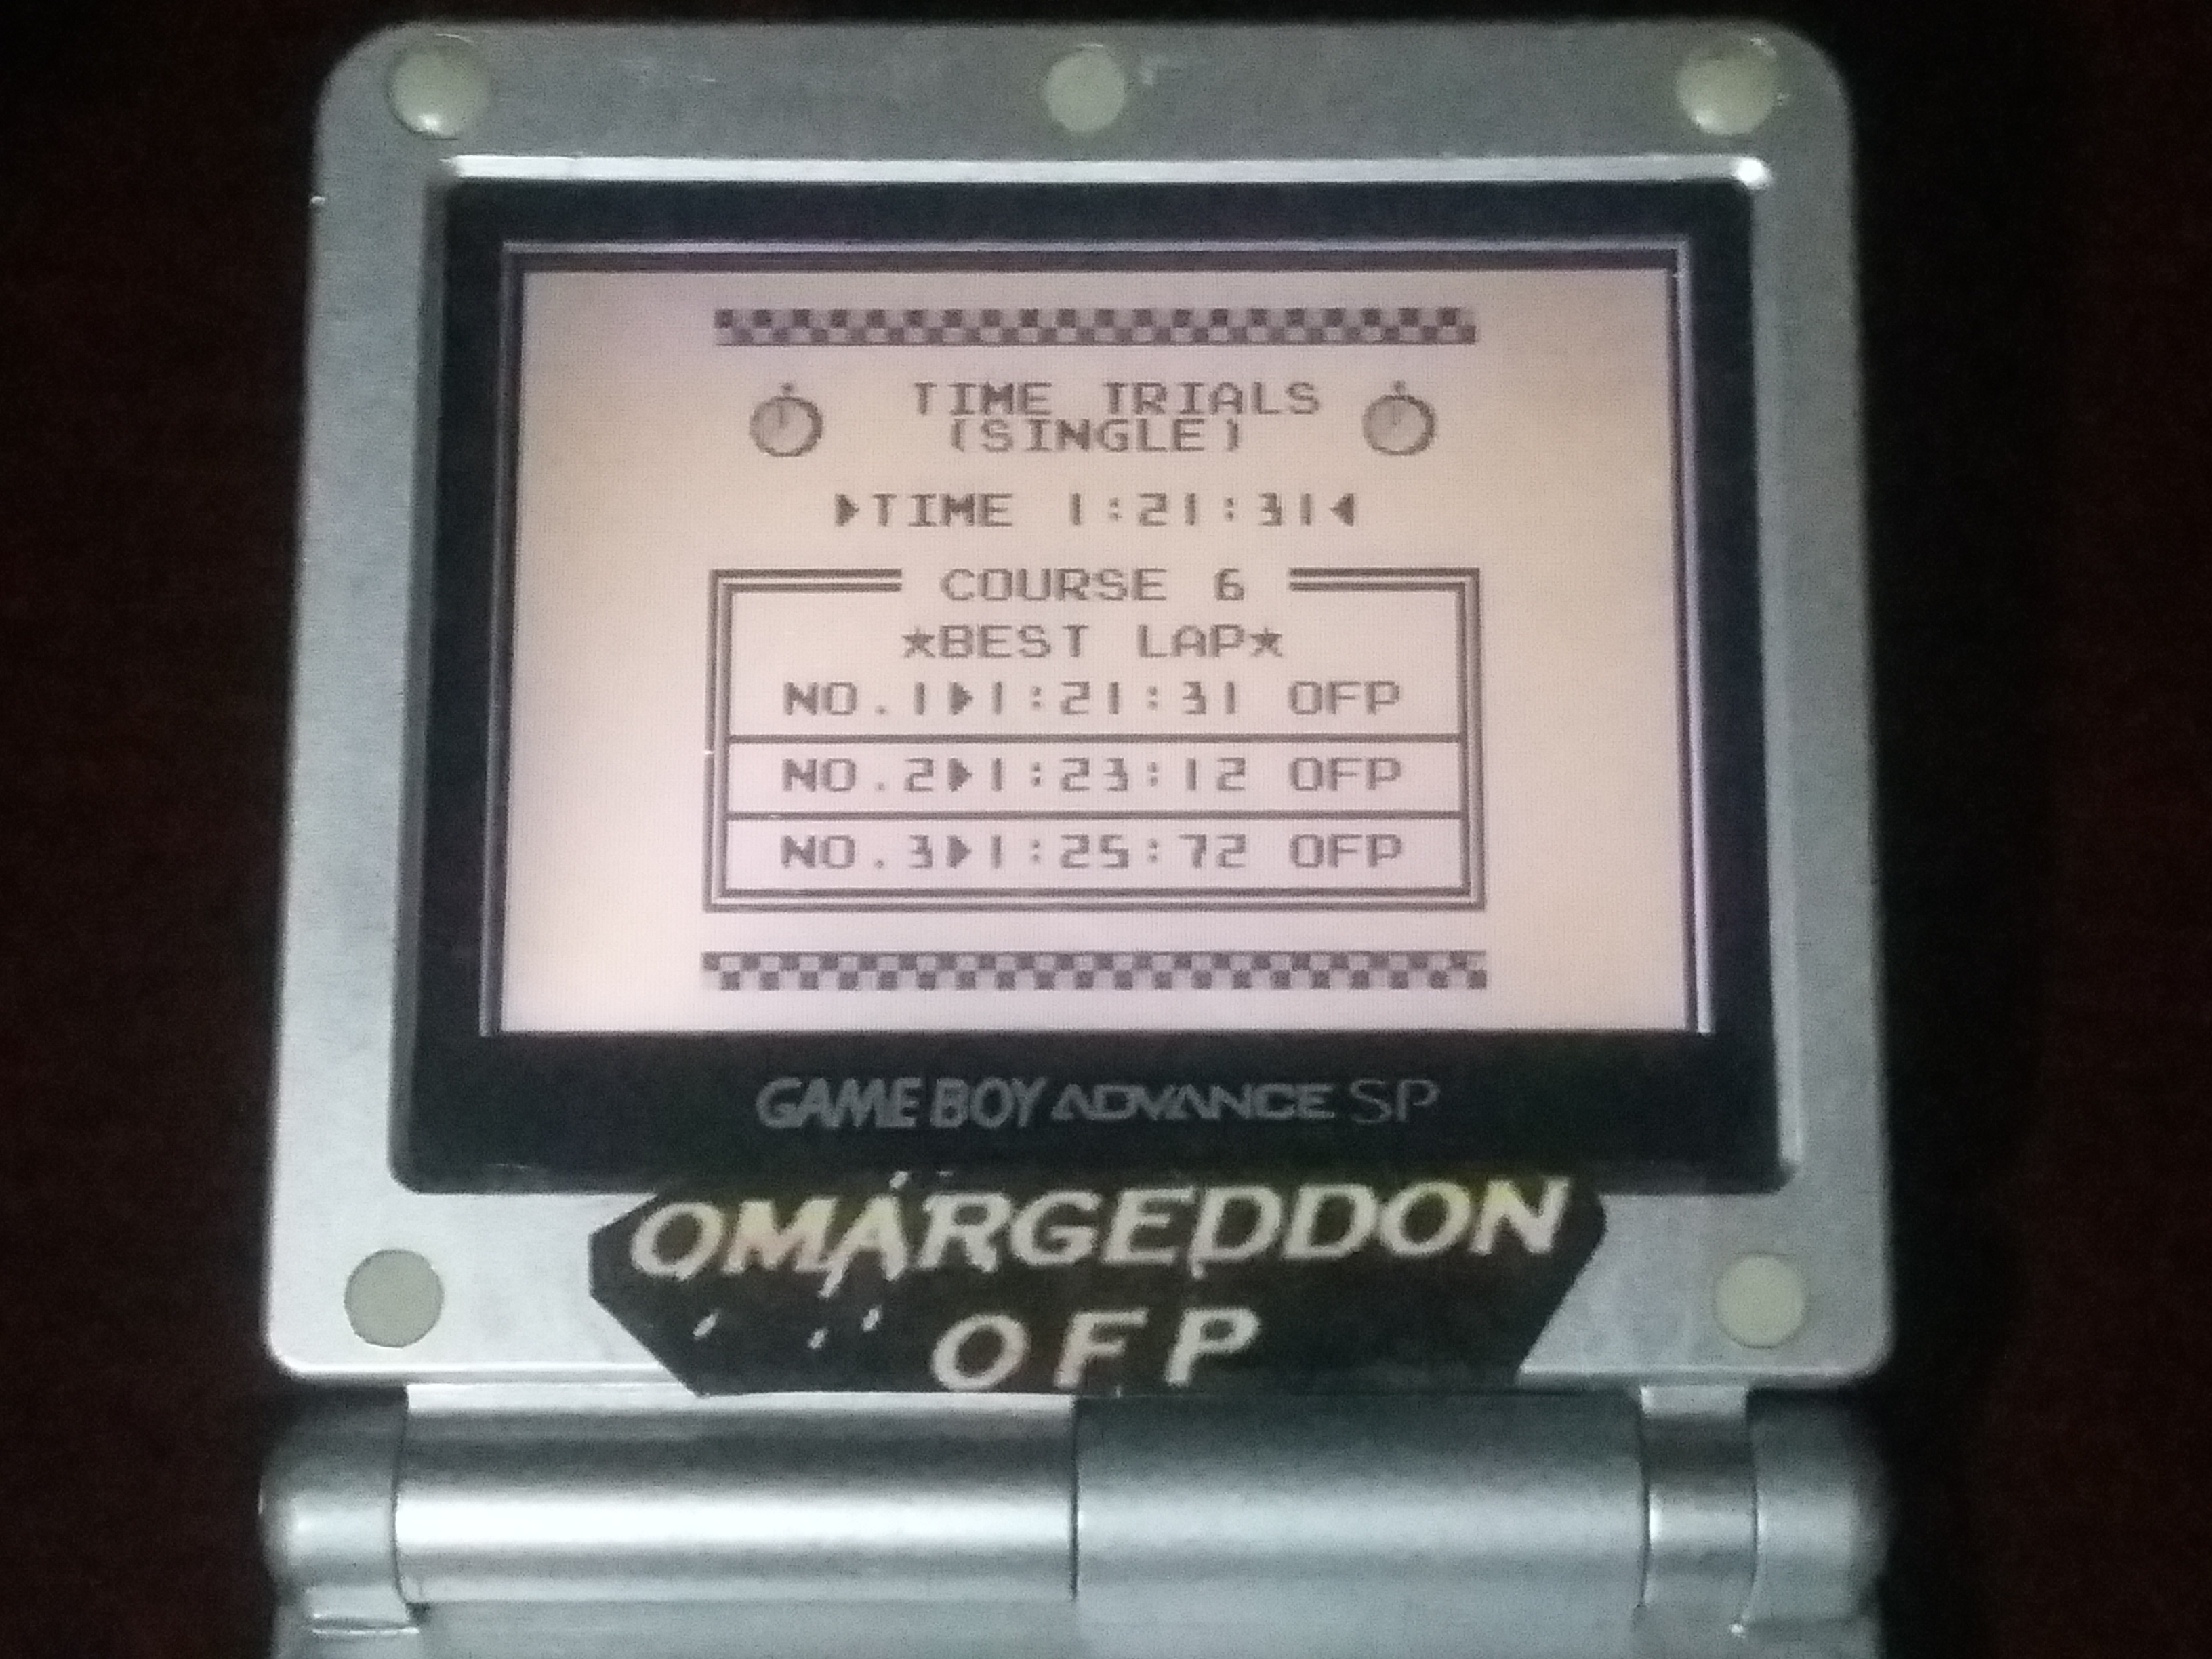 omargeddon: F-1 Race: Time Trials: Single: Brazil [Best Lap] (Game Boy) 0:01:21.31 points on 2018-01-07 03:20:15